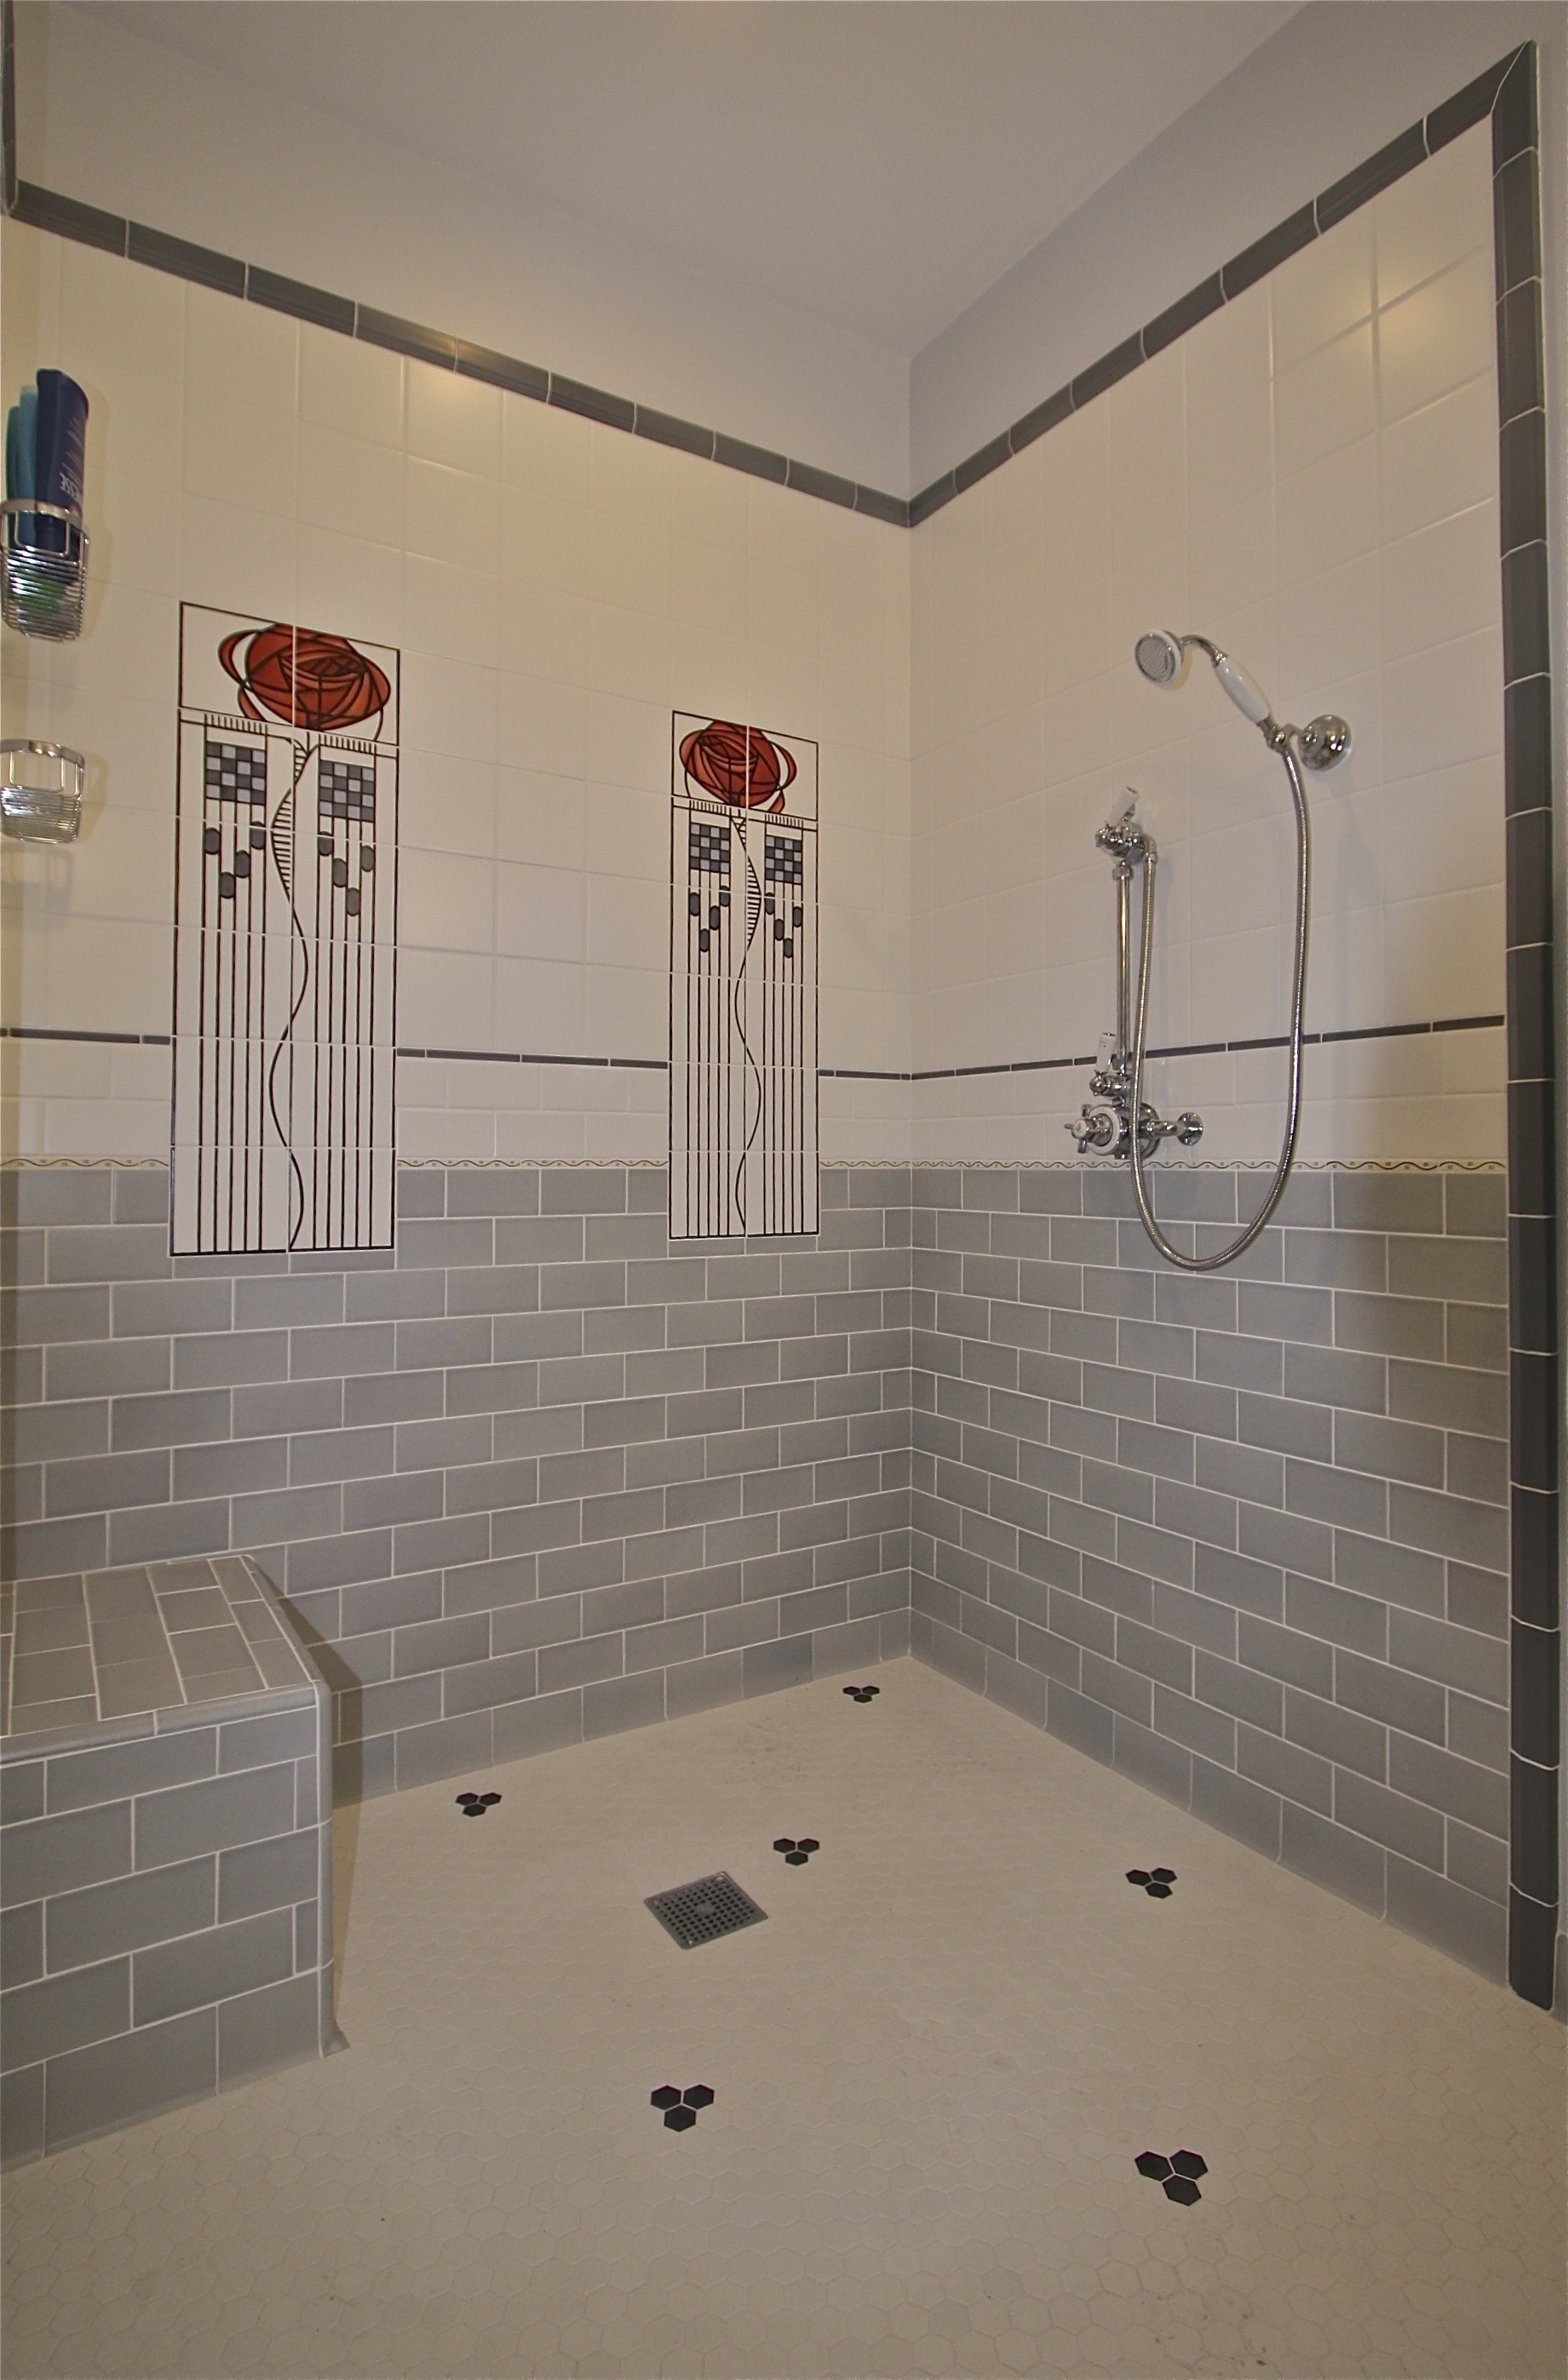 After: New damless shower incorporating 12 sq. ft. of areafrom adjoining half bath.